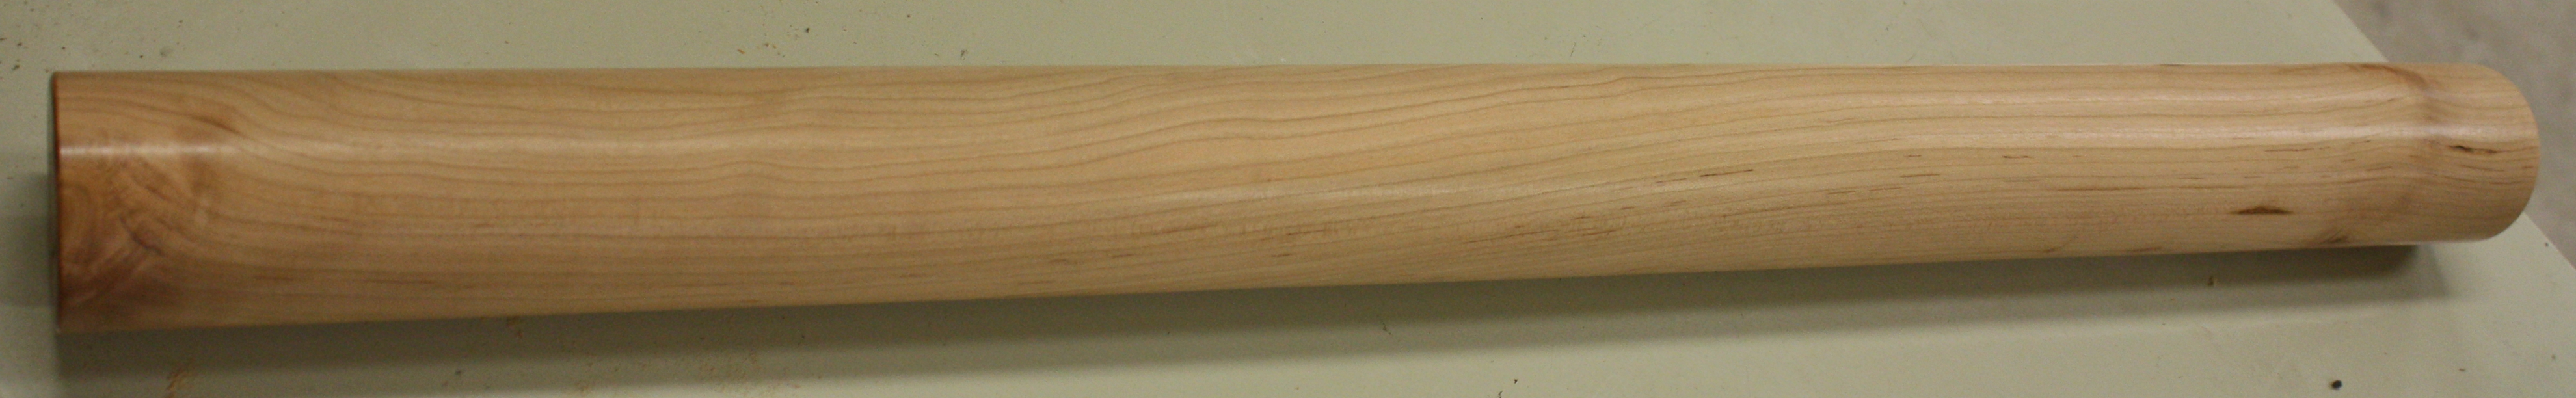 Cherry Rolling Pin and Benjamin's Best Roughing Gouge Review